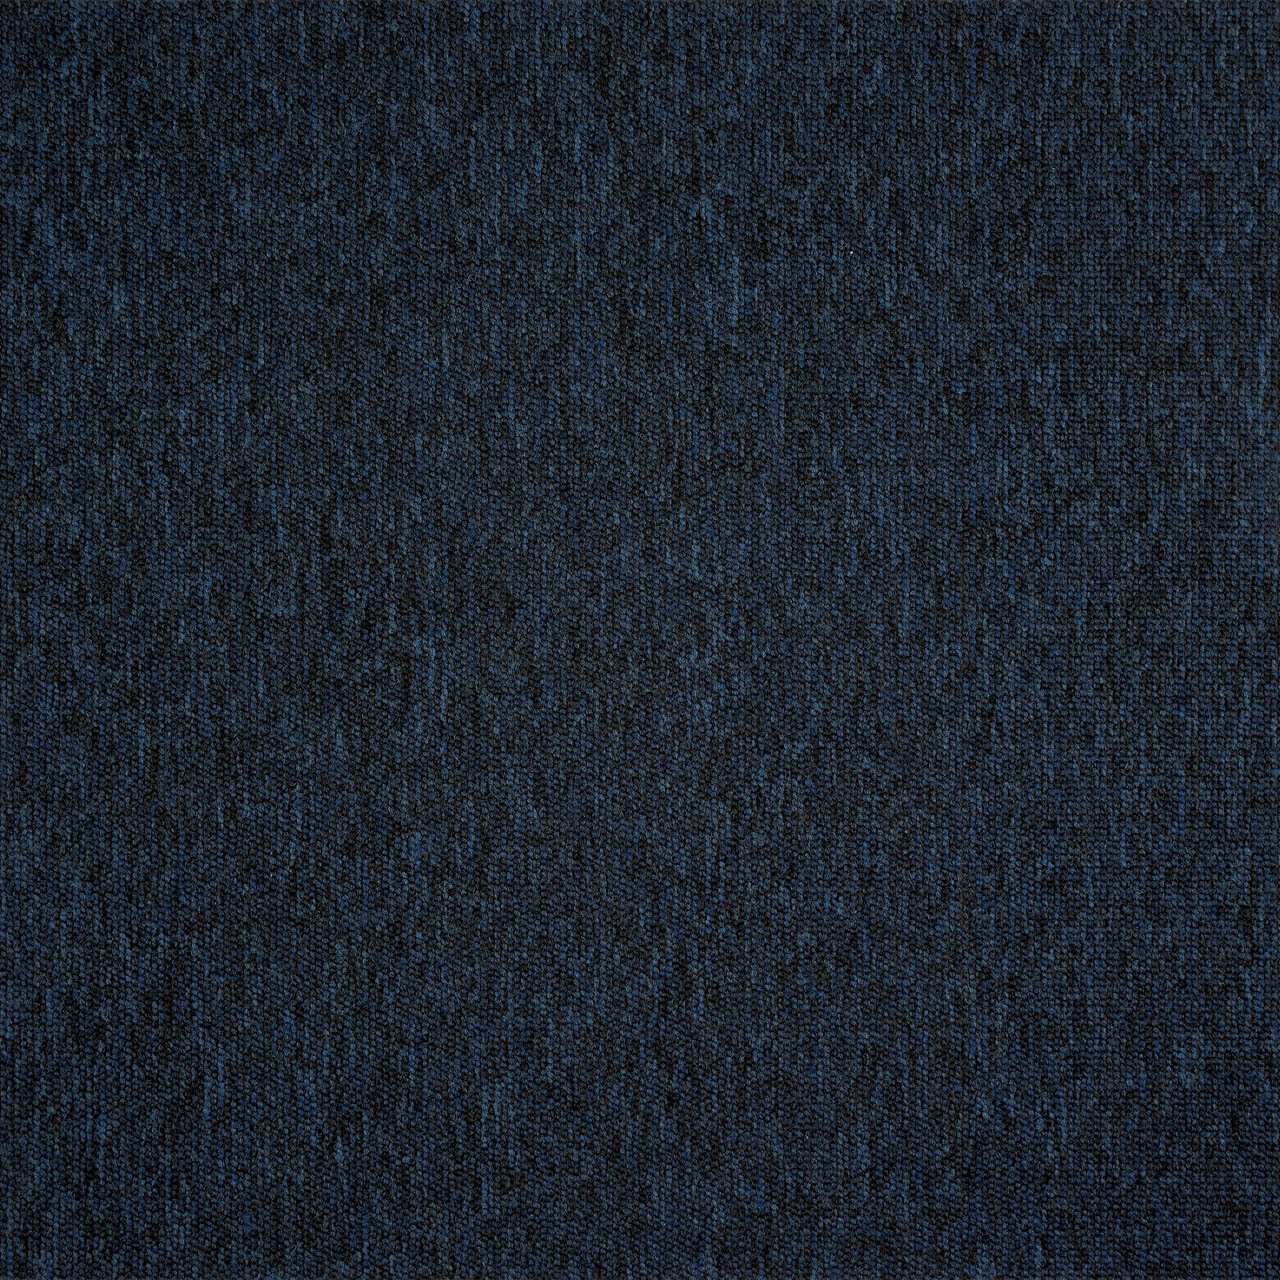 Amtico International: Realm Navy